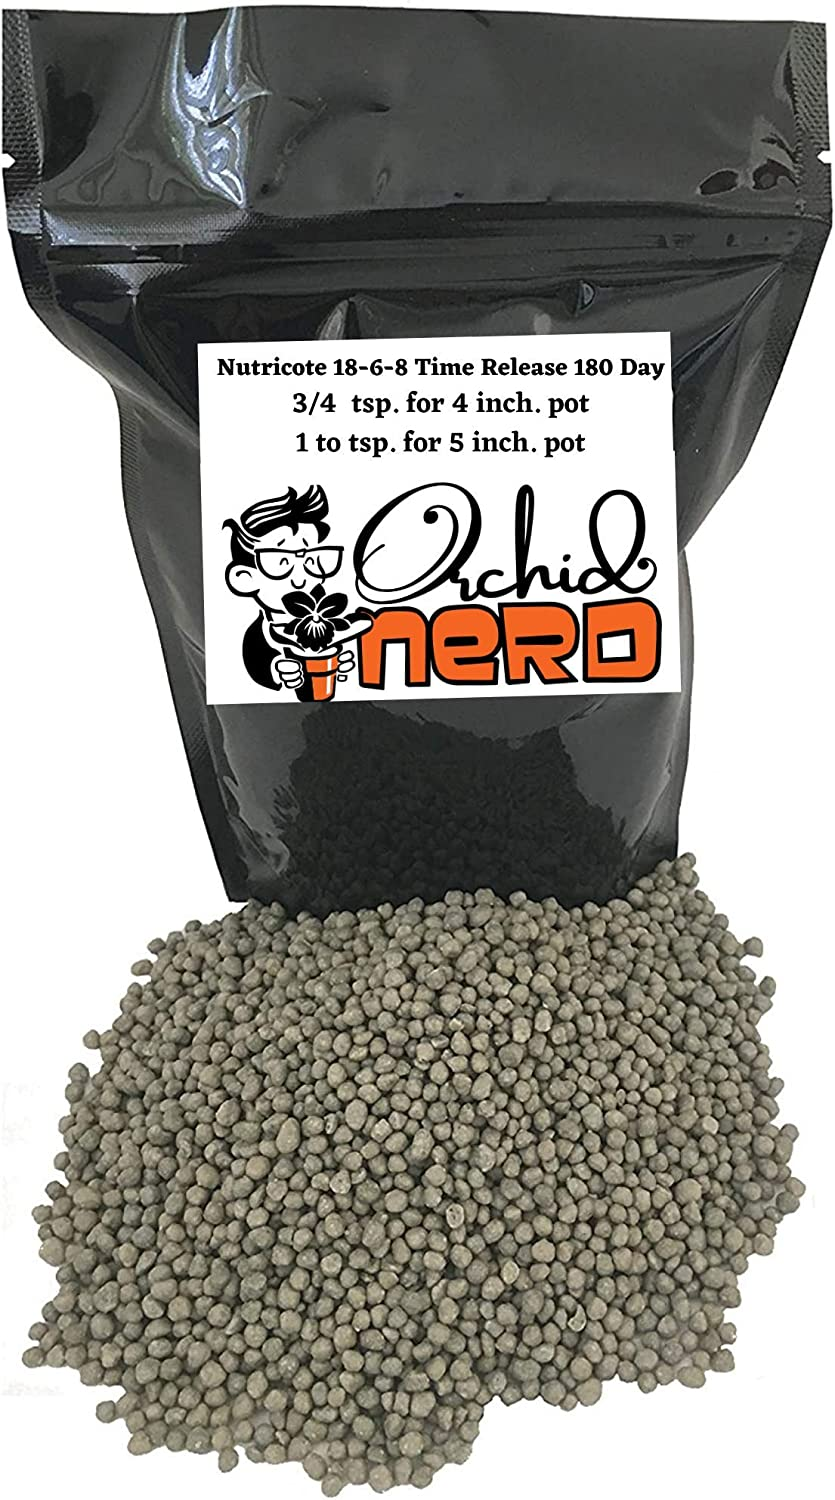 Nutricote Orchid Opening large release sale Food by Ferlizer 13-Ounce Nerd Dallas Mall